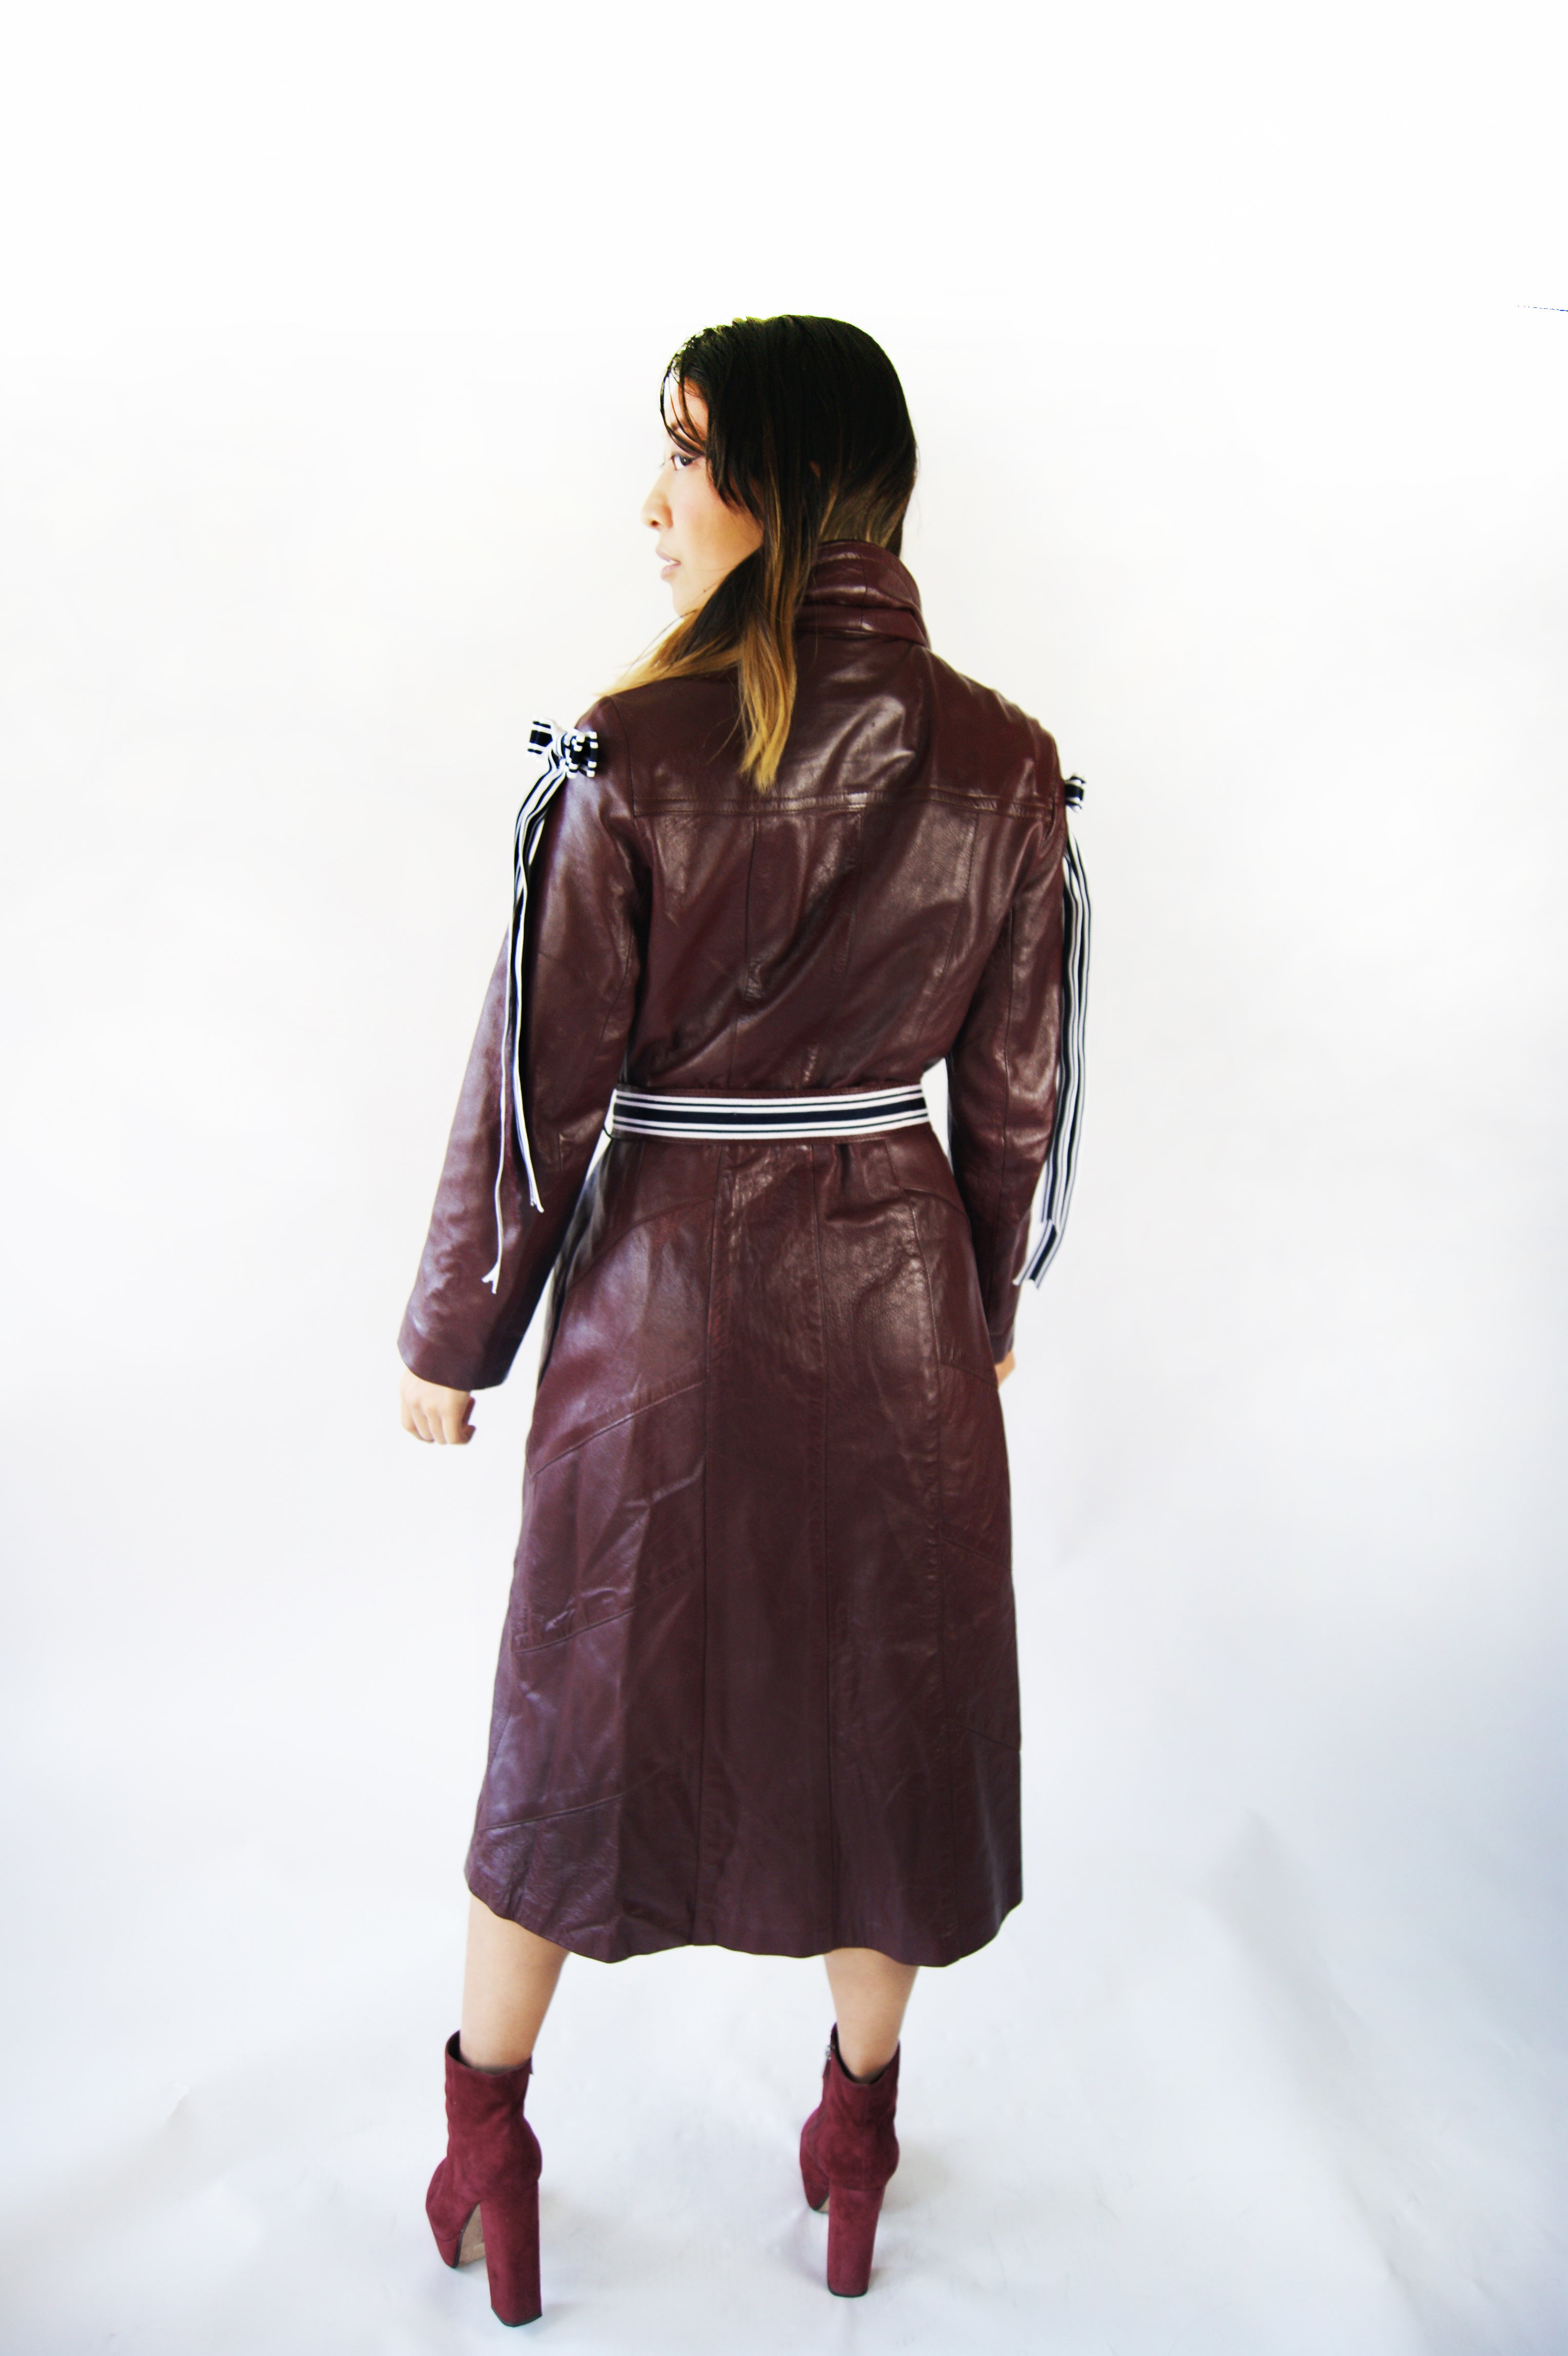 Vintage 1970's GENUINE LAMB LEATHER Burgundy Coat Very Similar To Michael Kors Runway look